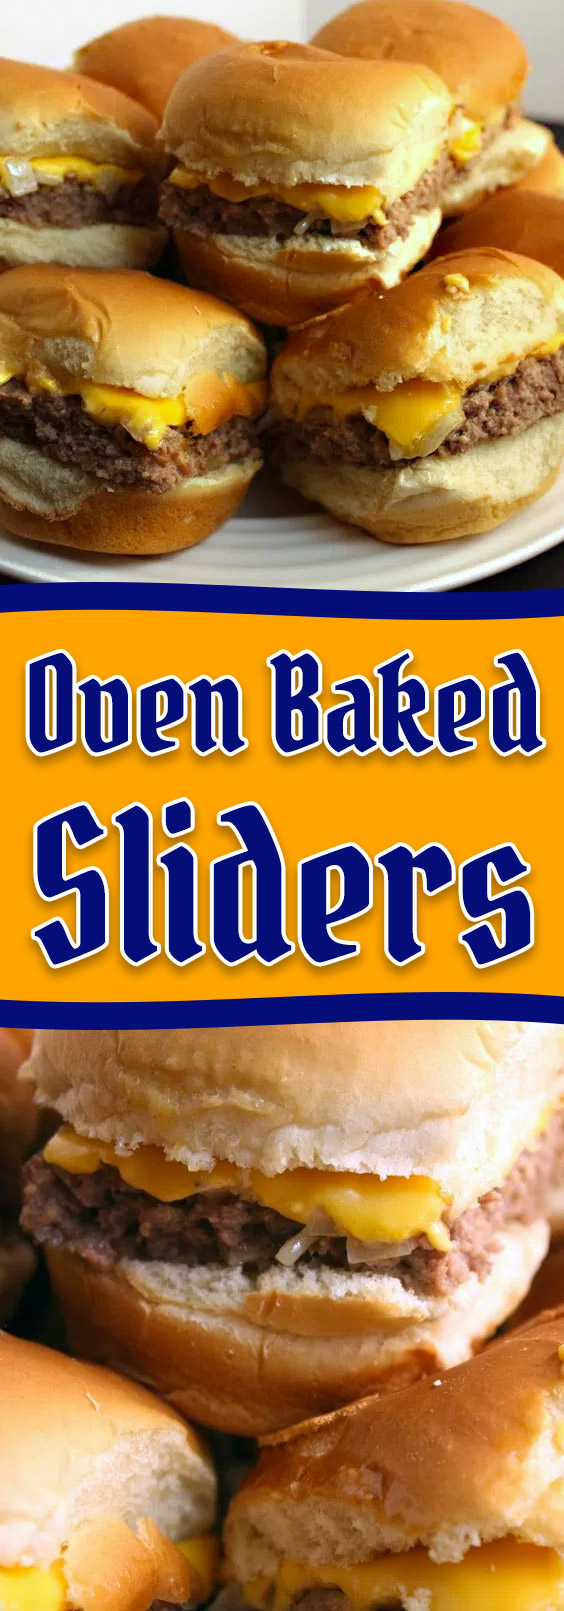 Oven Baked Sliders -These taste just like Krystal's or White Castle hamburgers. Super easy to make! #party #gameday